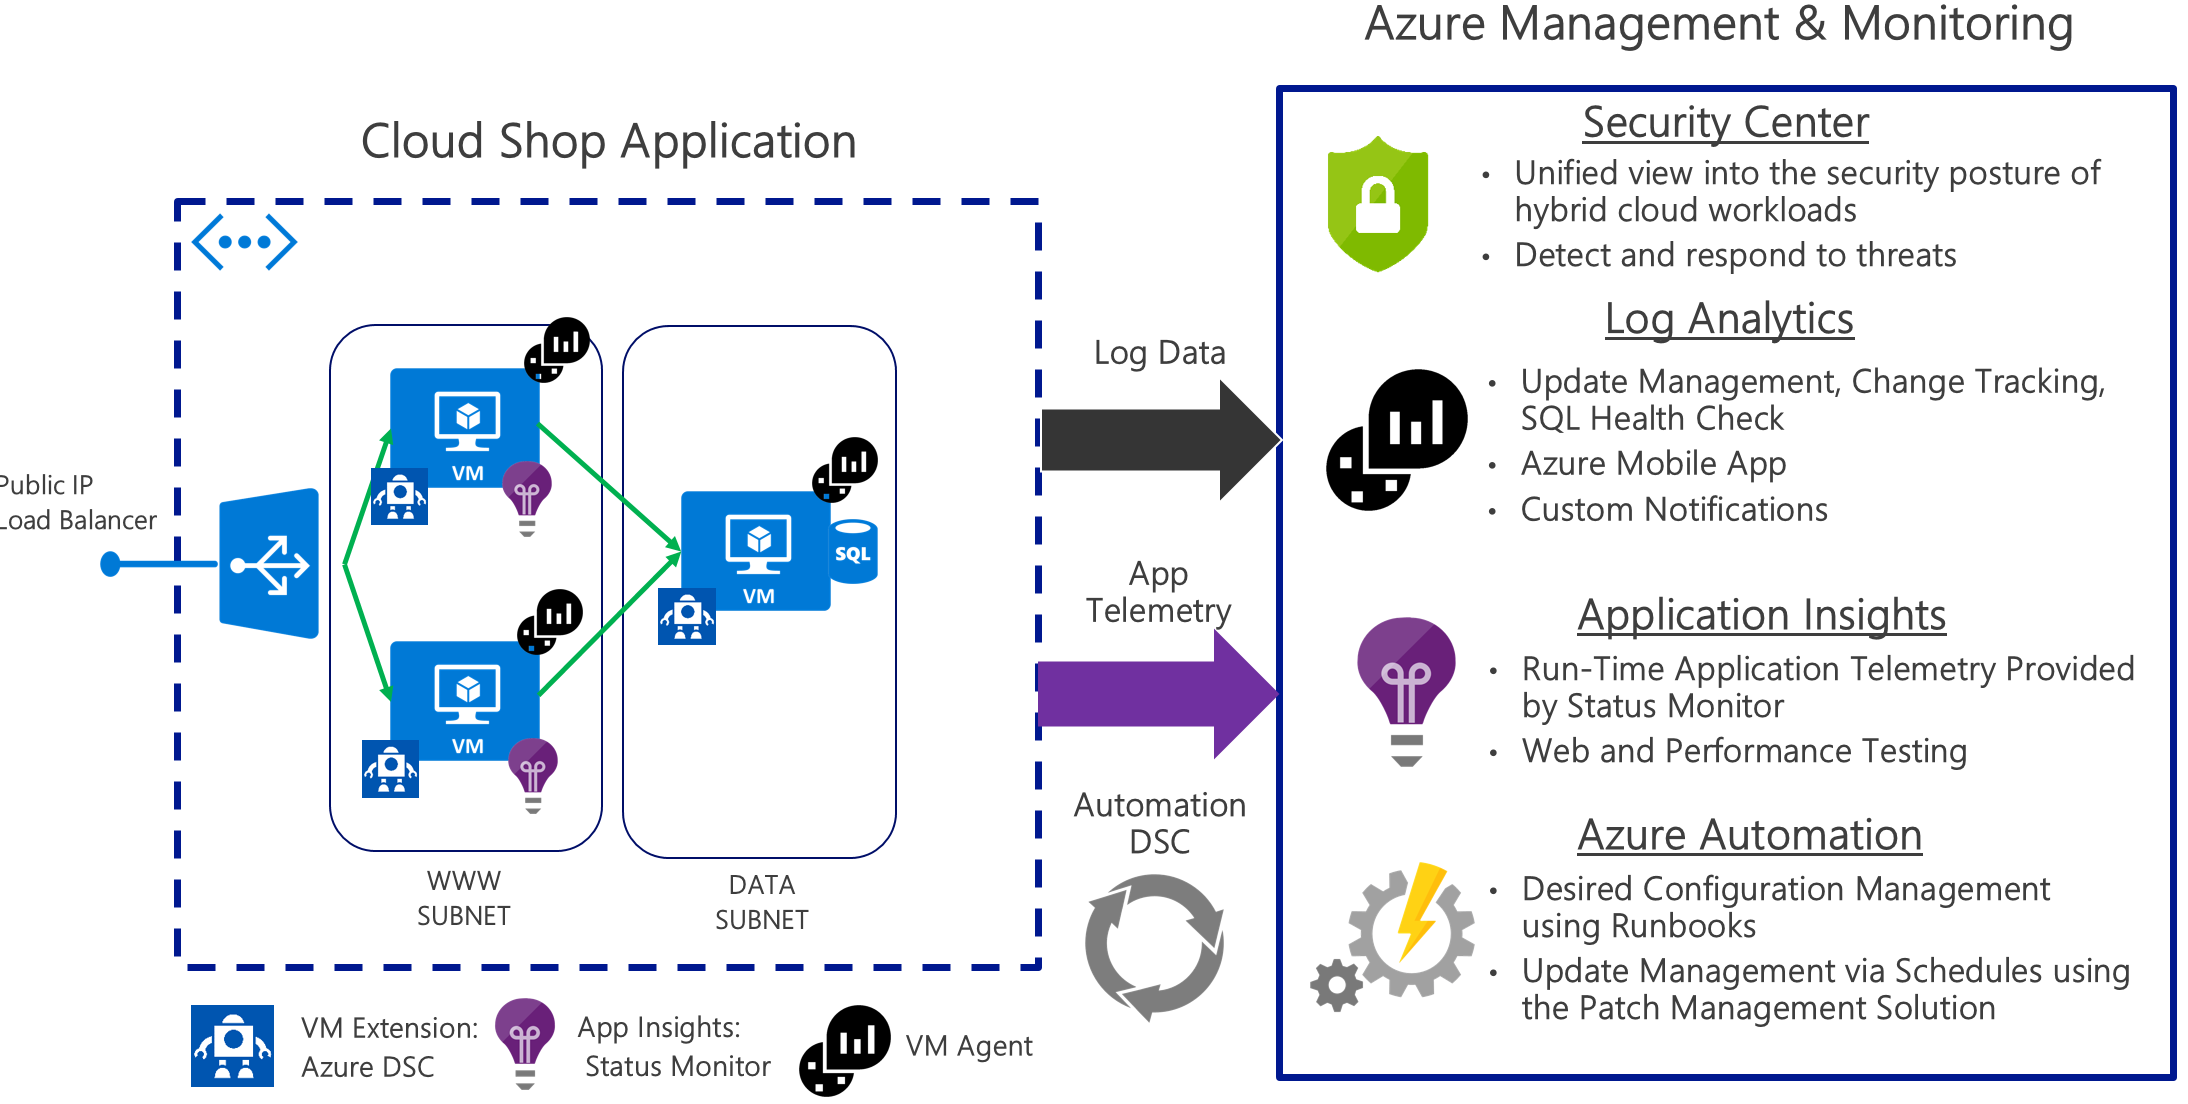 Azure Security and Management – includes